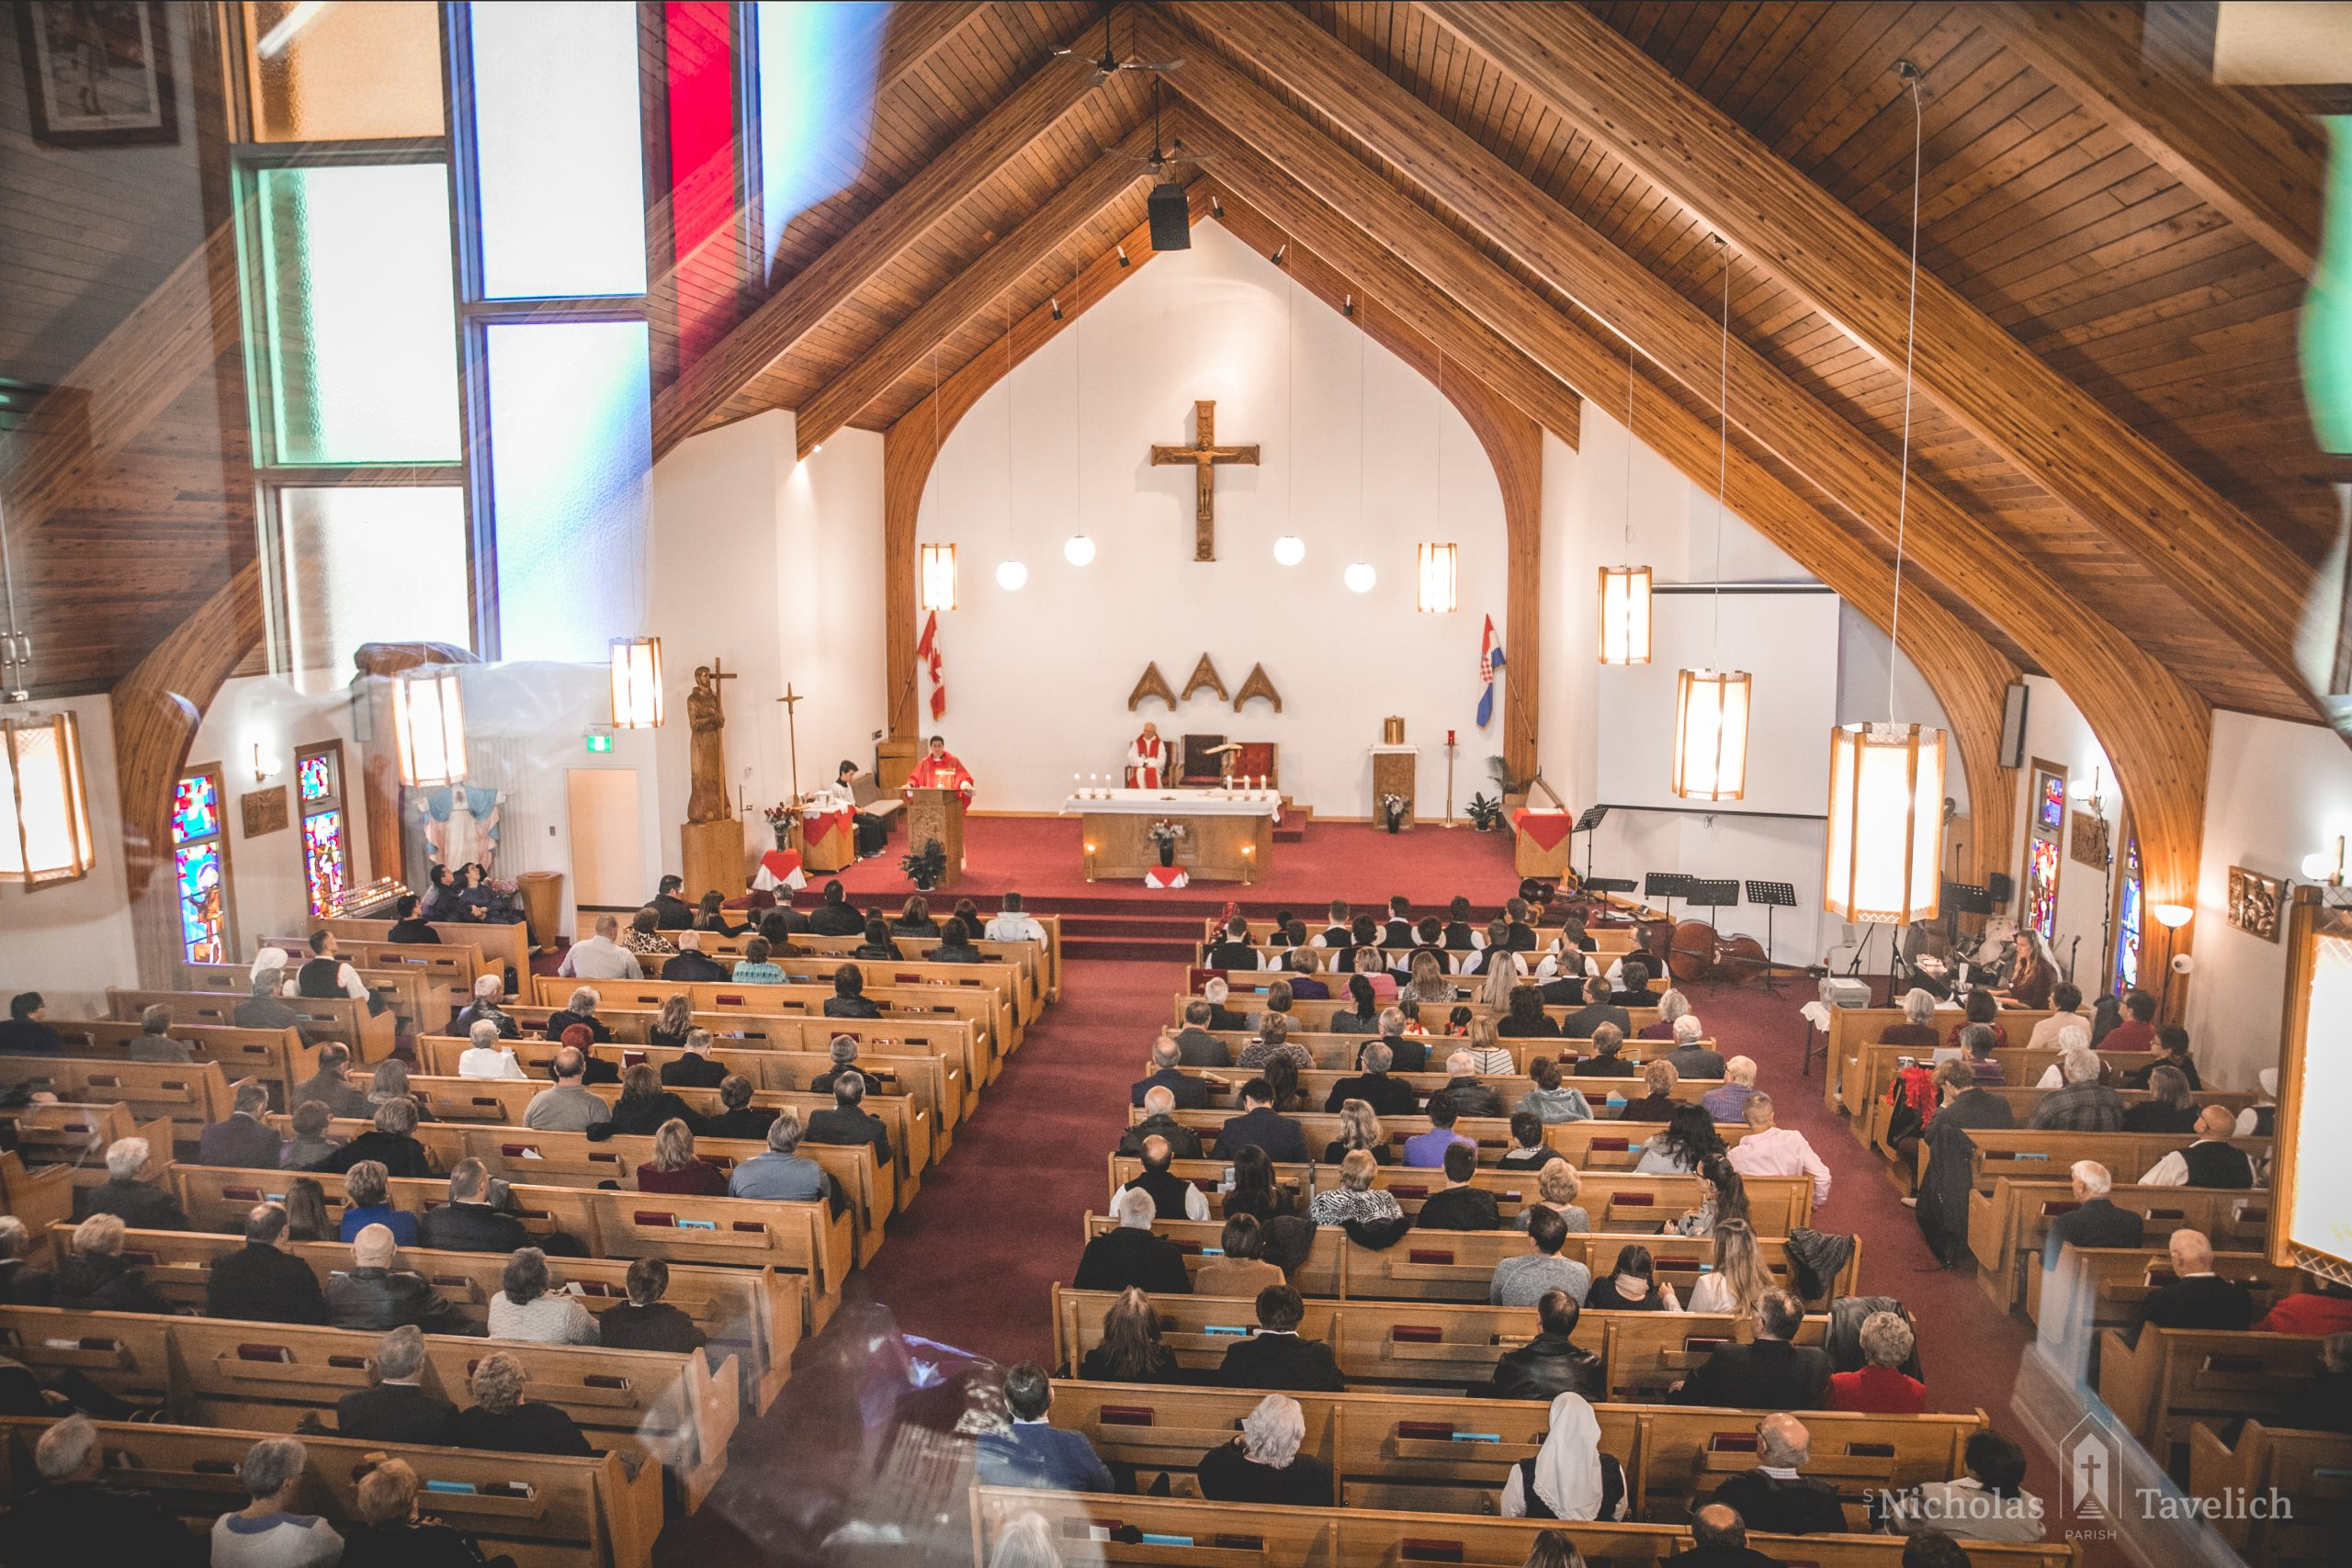 Reopening our church with limitations